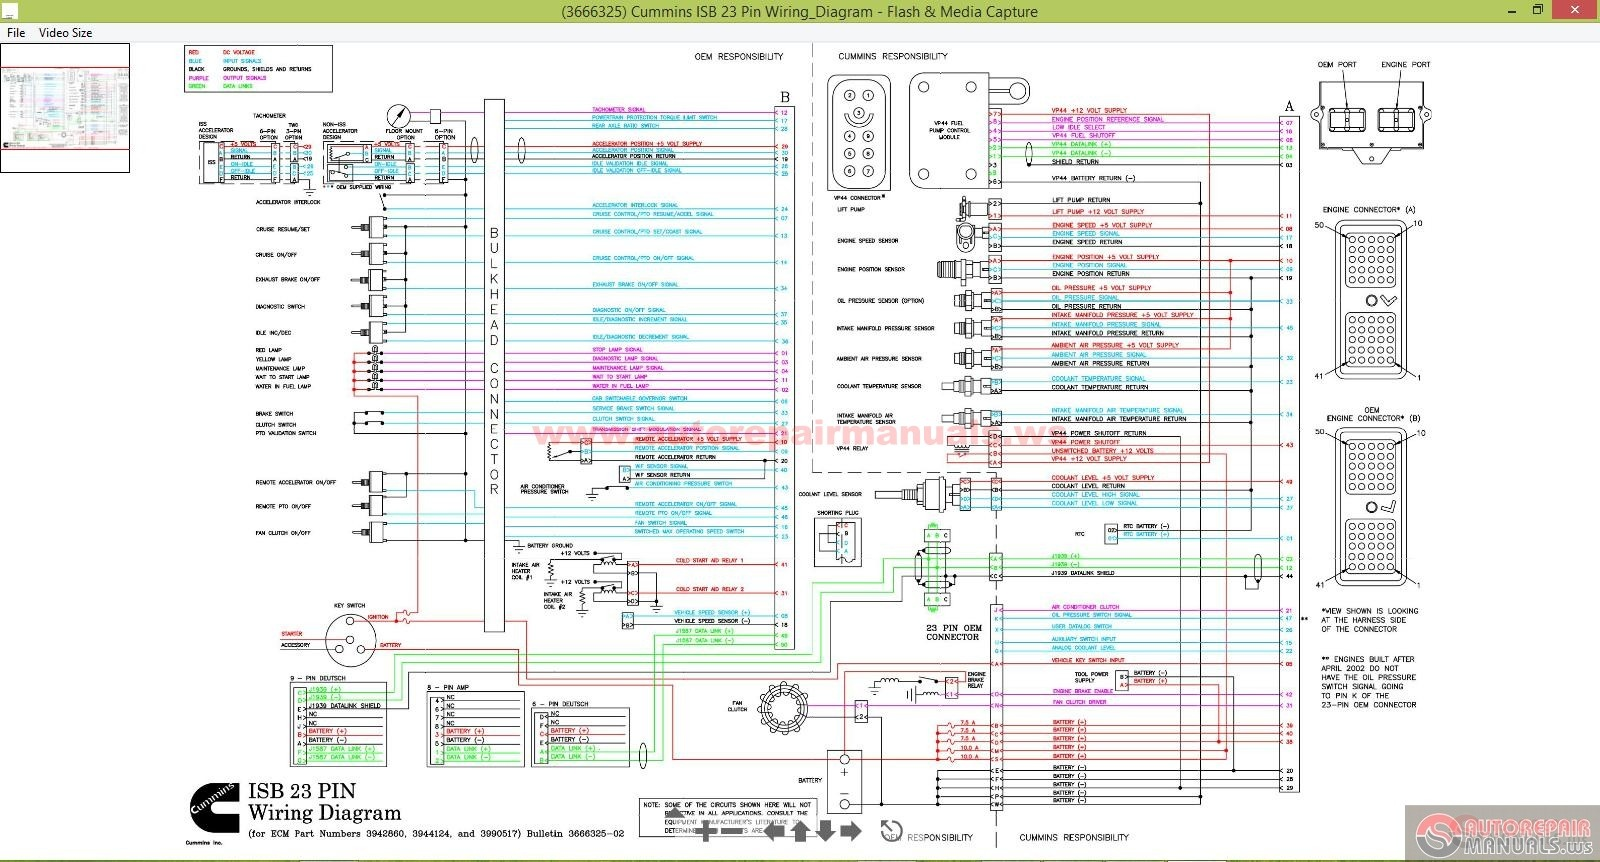 3666325_Cummins_ISB_23_Pin_WiringDiagram cat 70 pin ecm wiring diagram caterpillar c15 wiring diagram  at eliteediting.co